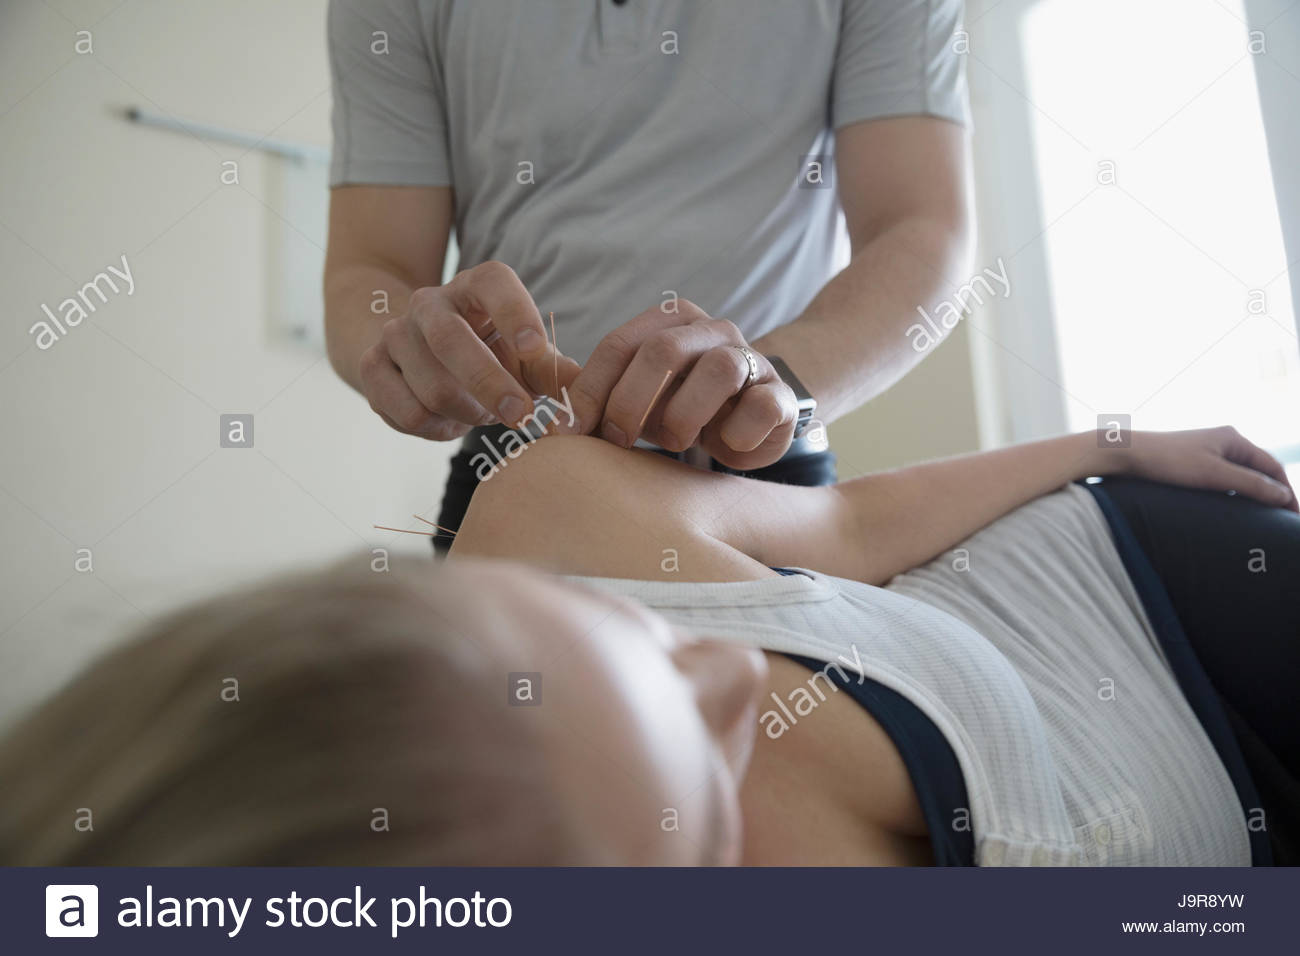 Male acupuncturist inserting needles in shoulder of woman in clinic examination room - Stock Image